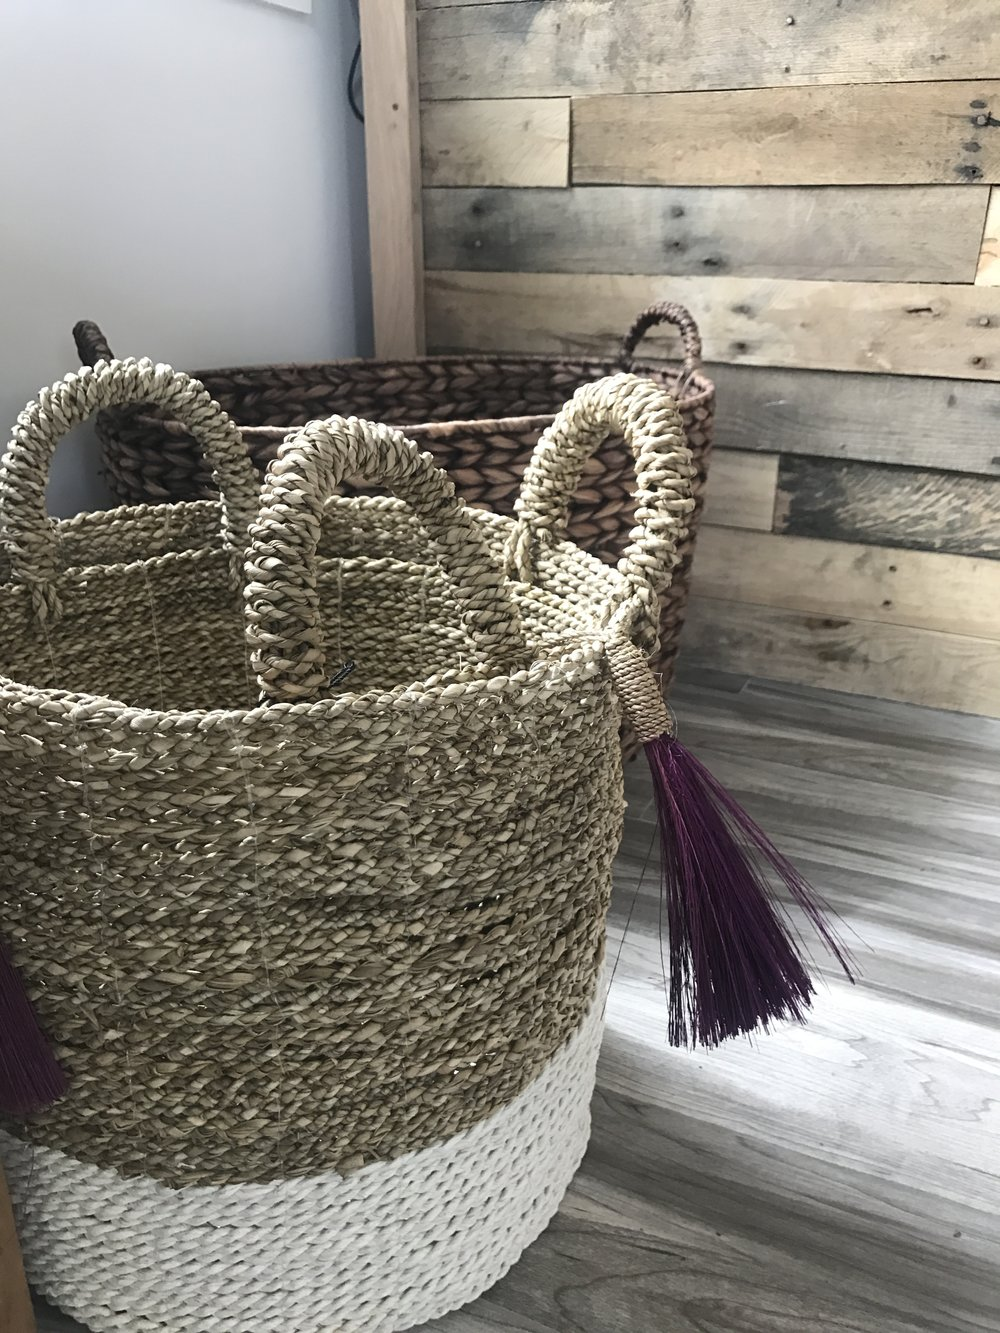 Weaver Gardens_Plants_Planters_Flowers_Garden_Gardening_Retail_Nursery_Home_Decor_Gifts_Larchmont_NY_Local_Shop_Planting_Landscape_Landscaping_Westchester County_Store_Shopping_Buy_Products_Services_Morano Landscape_Baskets_Pots_Planters_Accessories_Interior